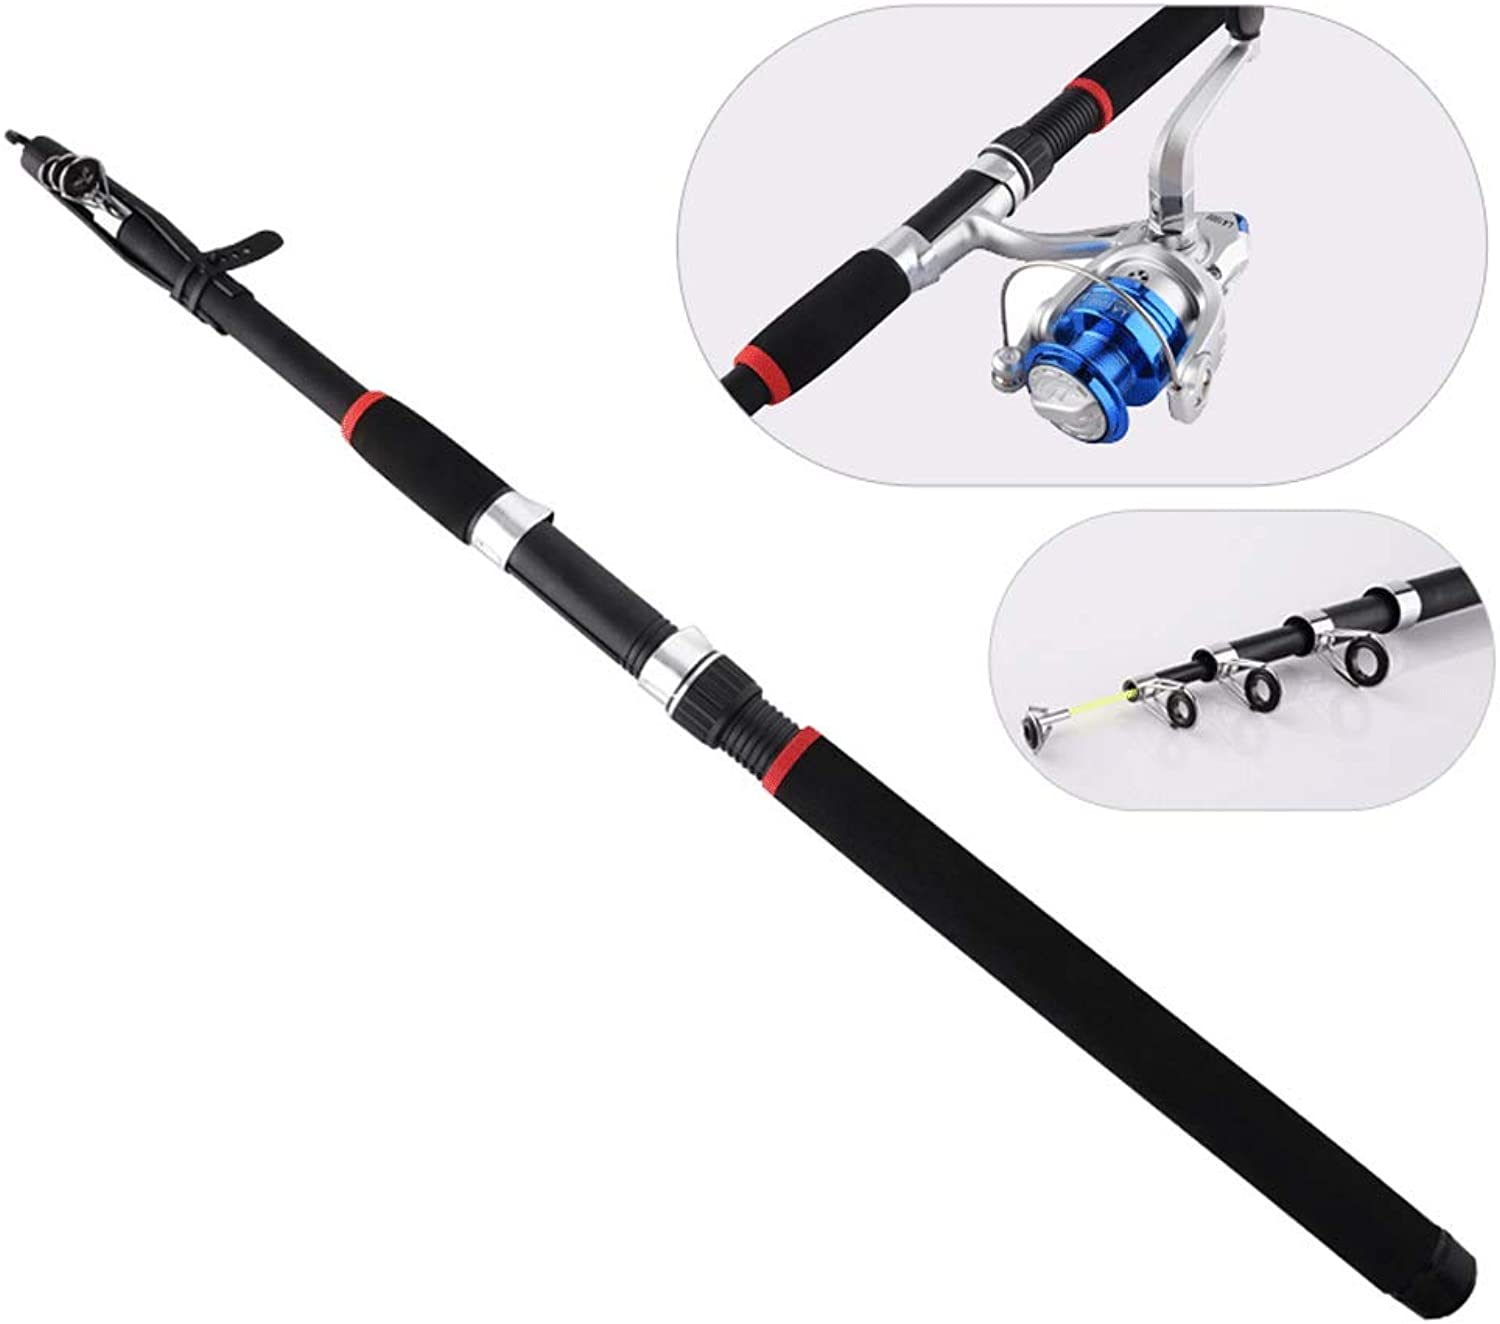 Telescopic Fishing Rod and Reel Combos Full Kit, Portable Spinning Fishing Rod with Hook Fishline Drop Bells Fishing Carrier Bag Case Accessories,2.1M